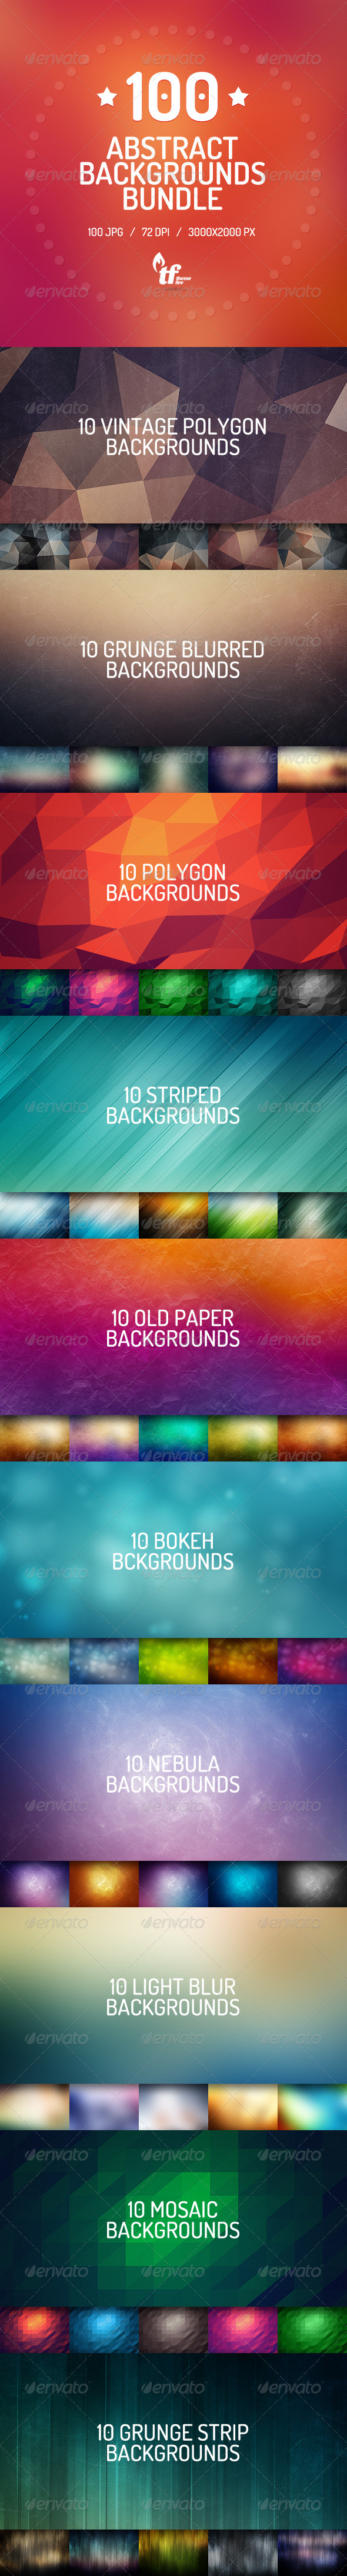 GraphicRiver 100 Abstract Backgrounds Bundle 7357250